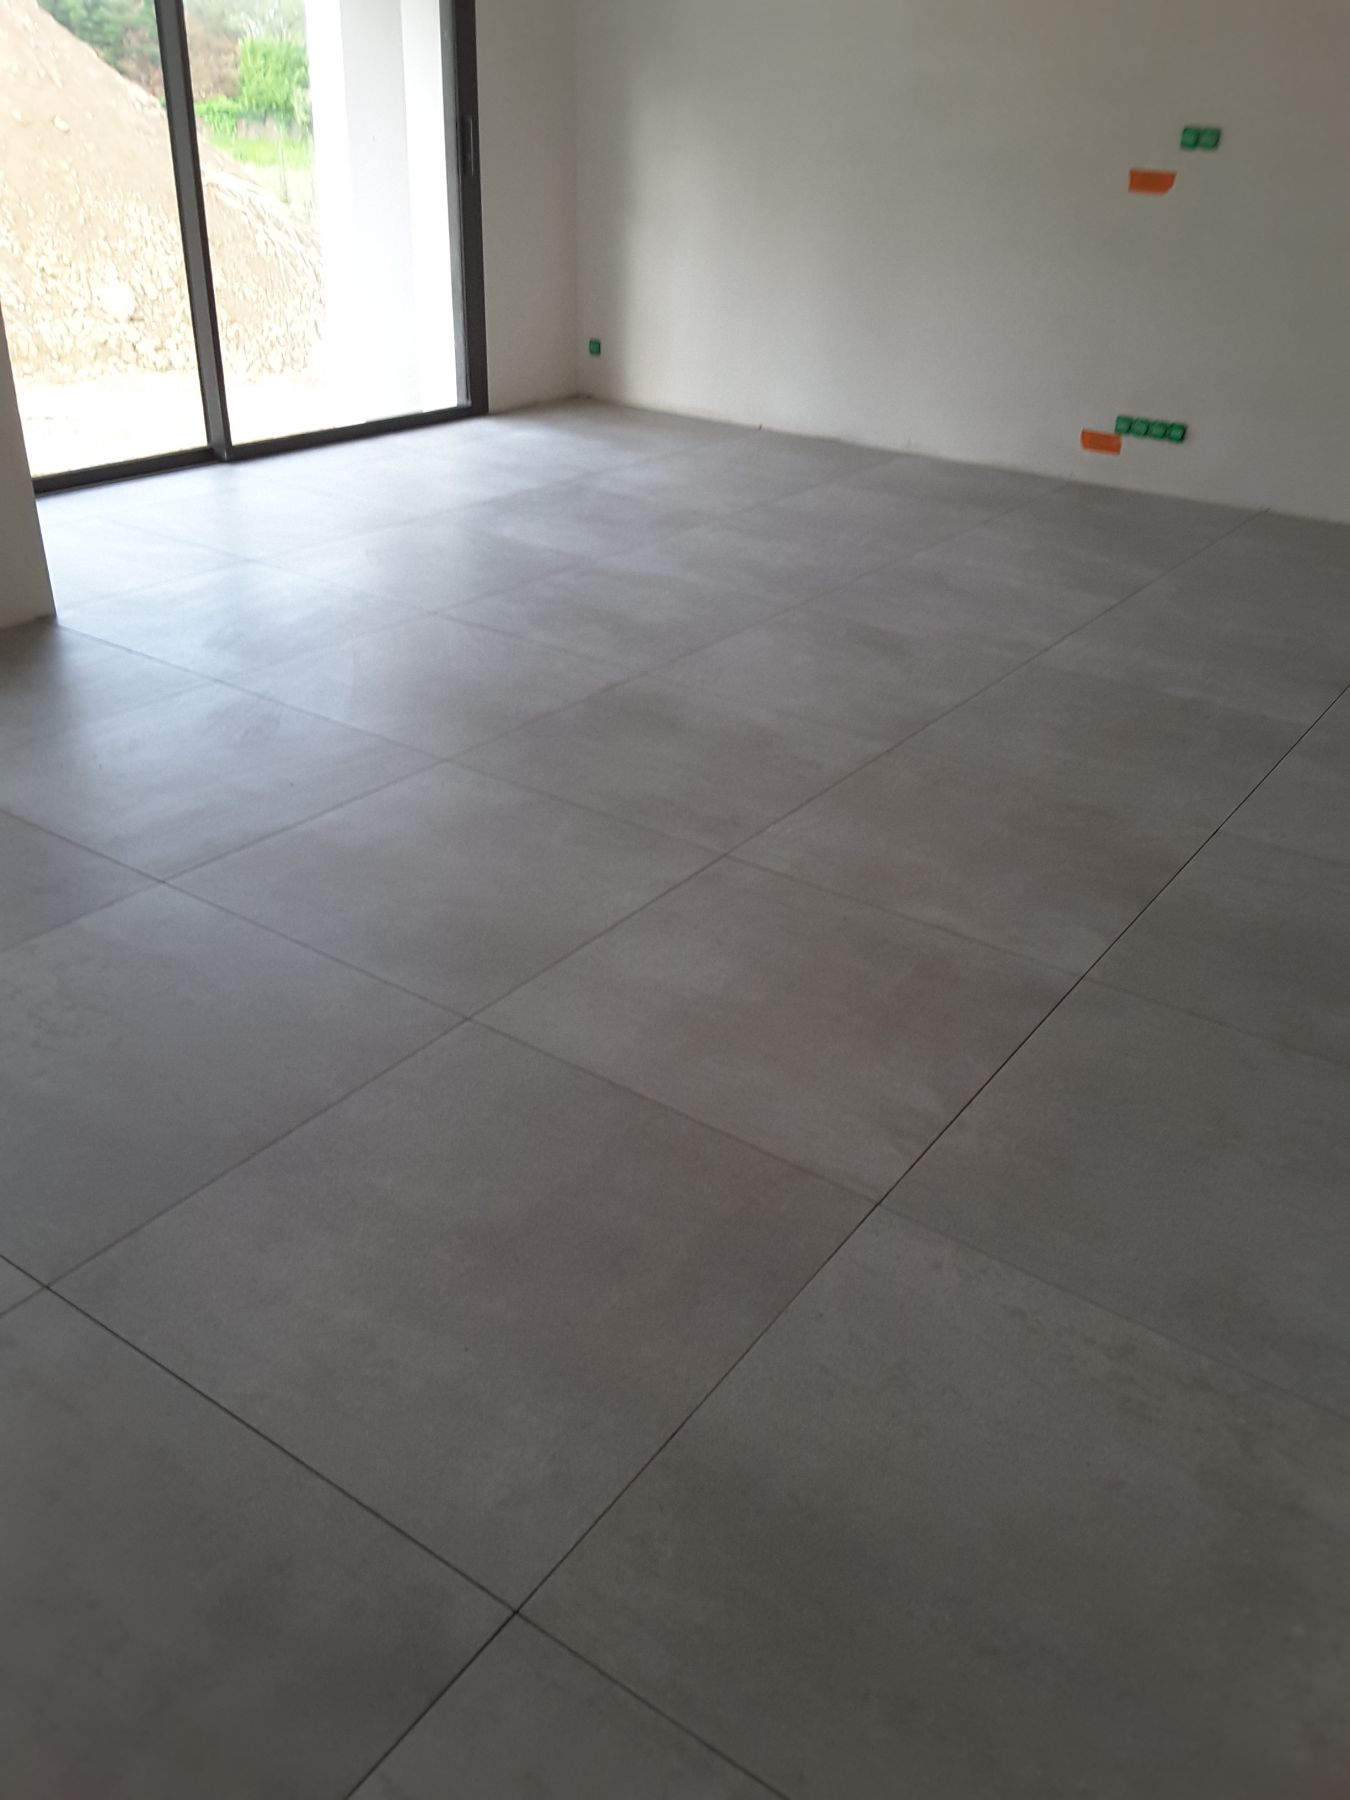 Pose de joint de carrelage blanchir un joint de for Carrelage grand format 120x120